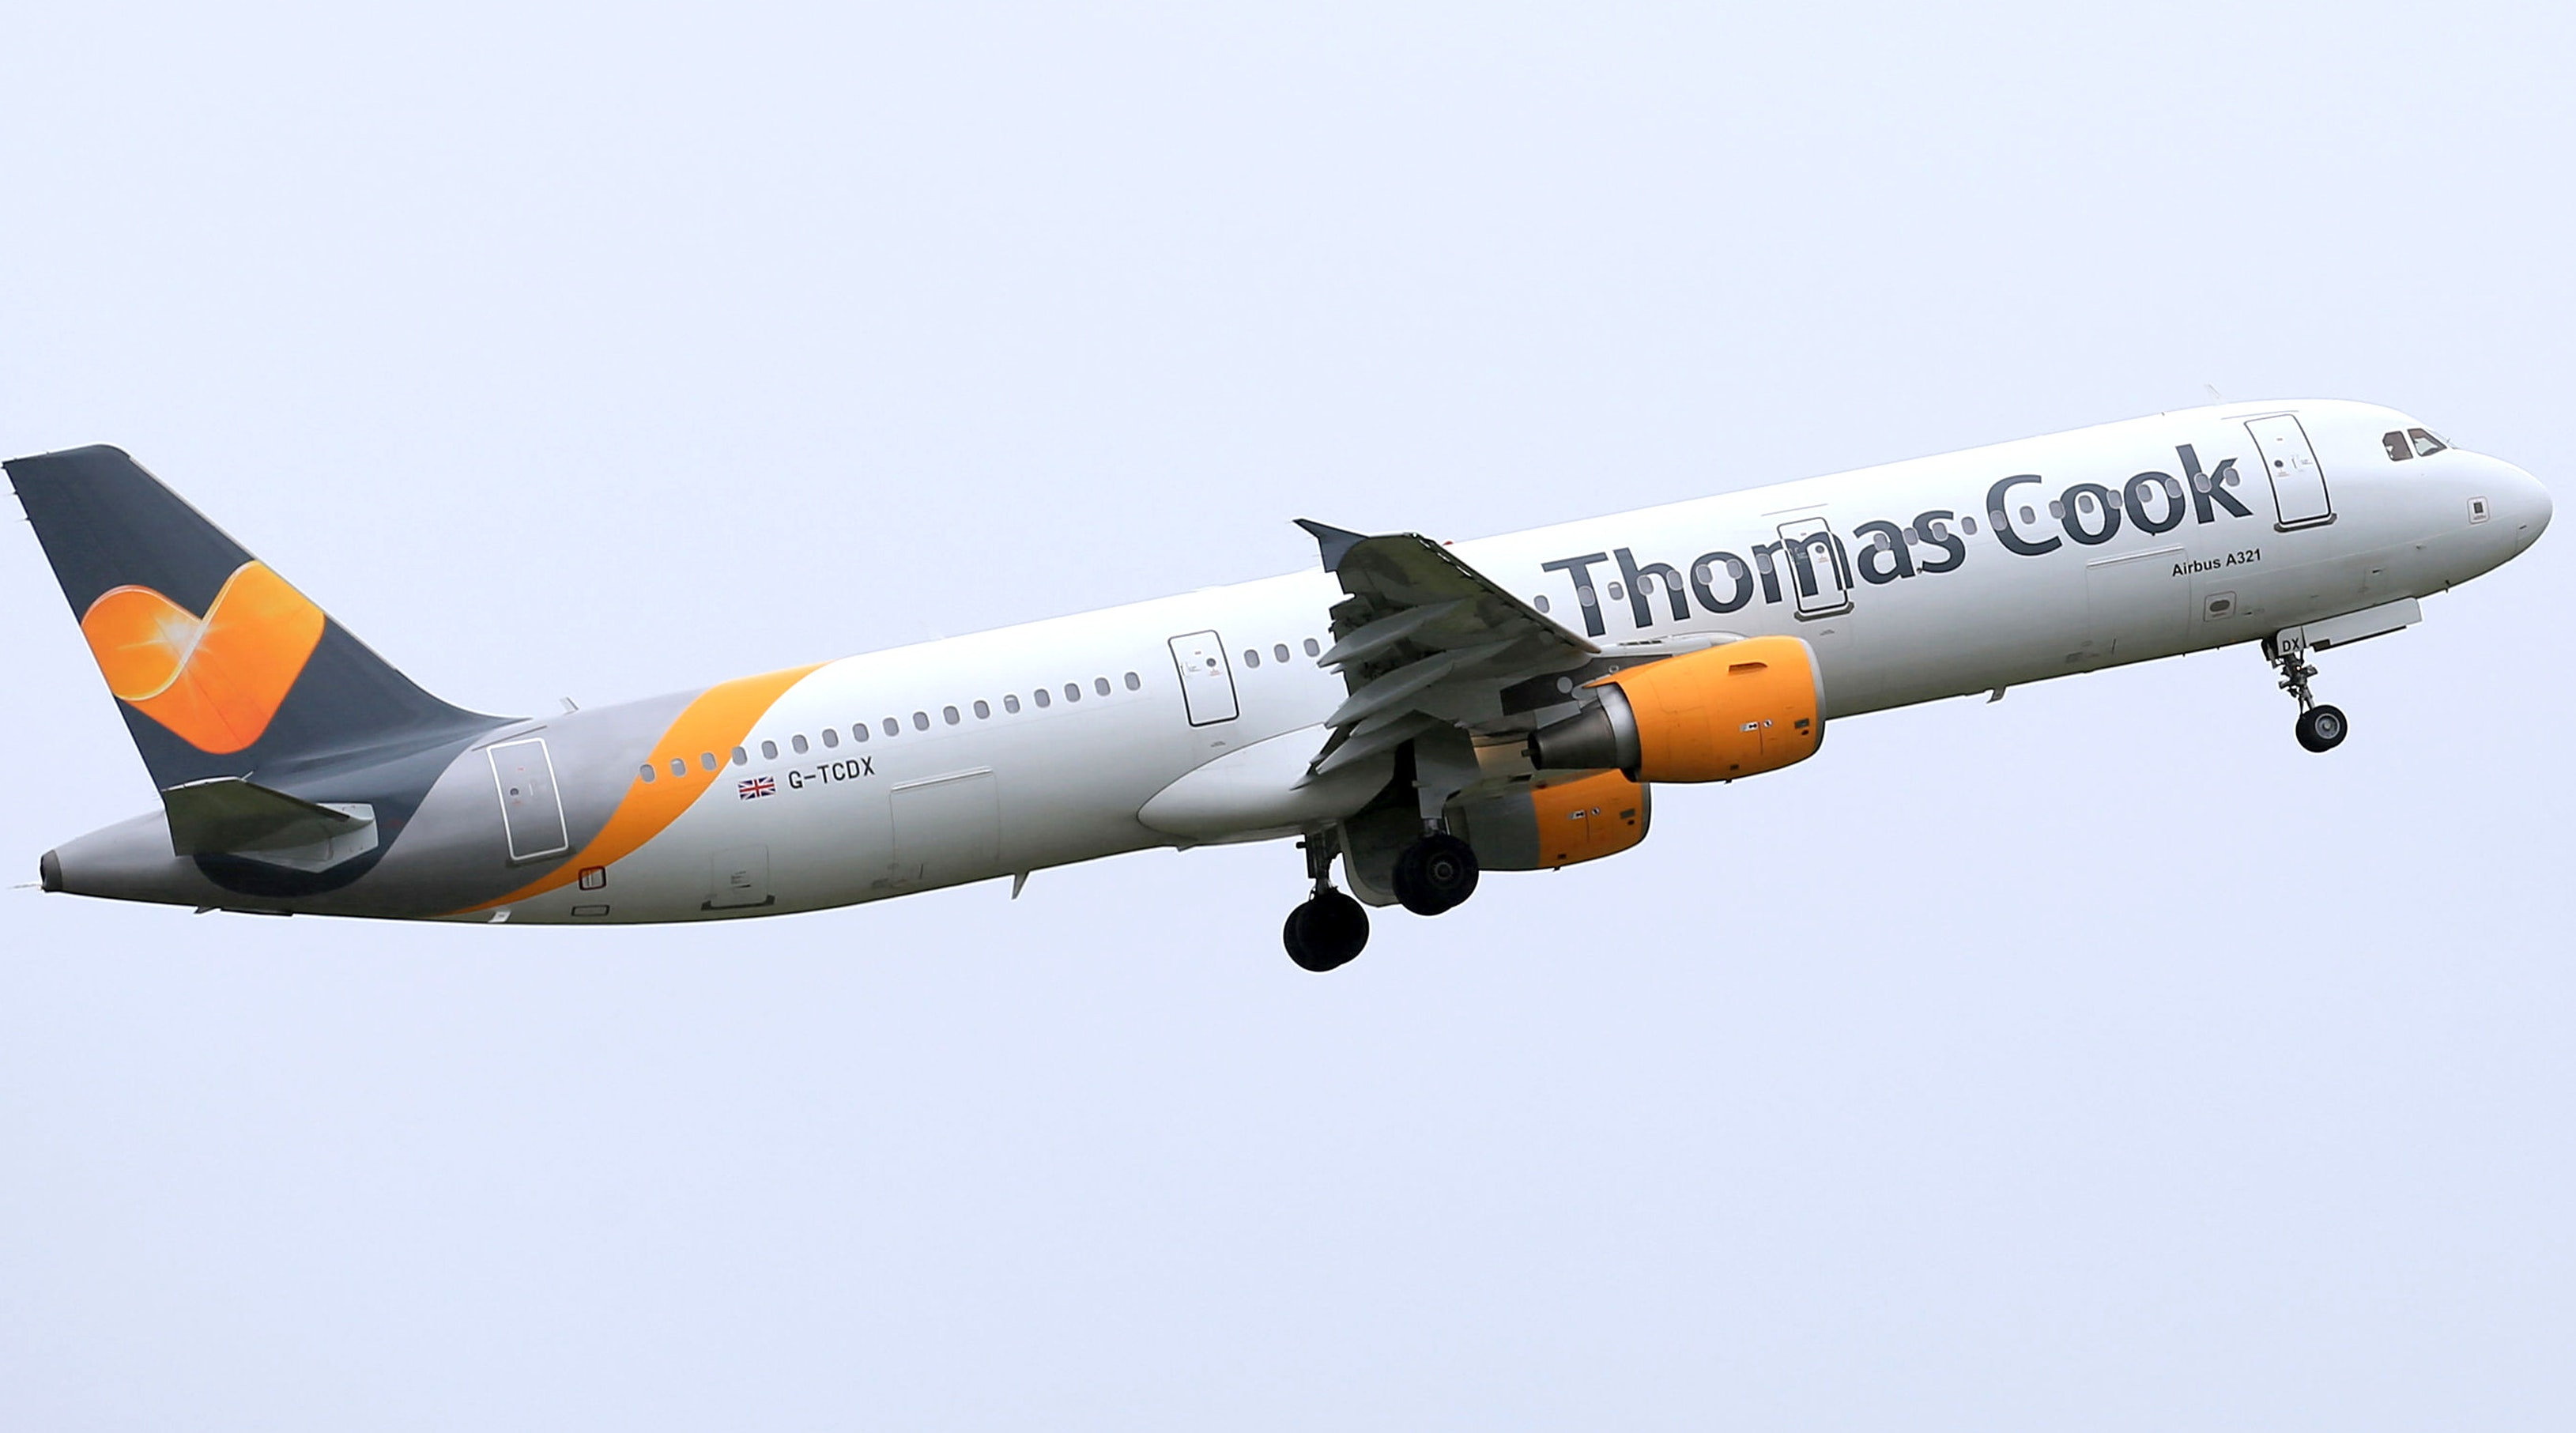 Thomas Cook holidaymakers won't be left stranded, Foreign Secretary says